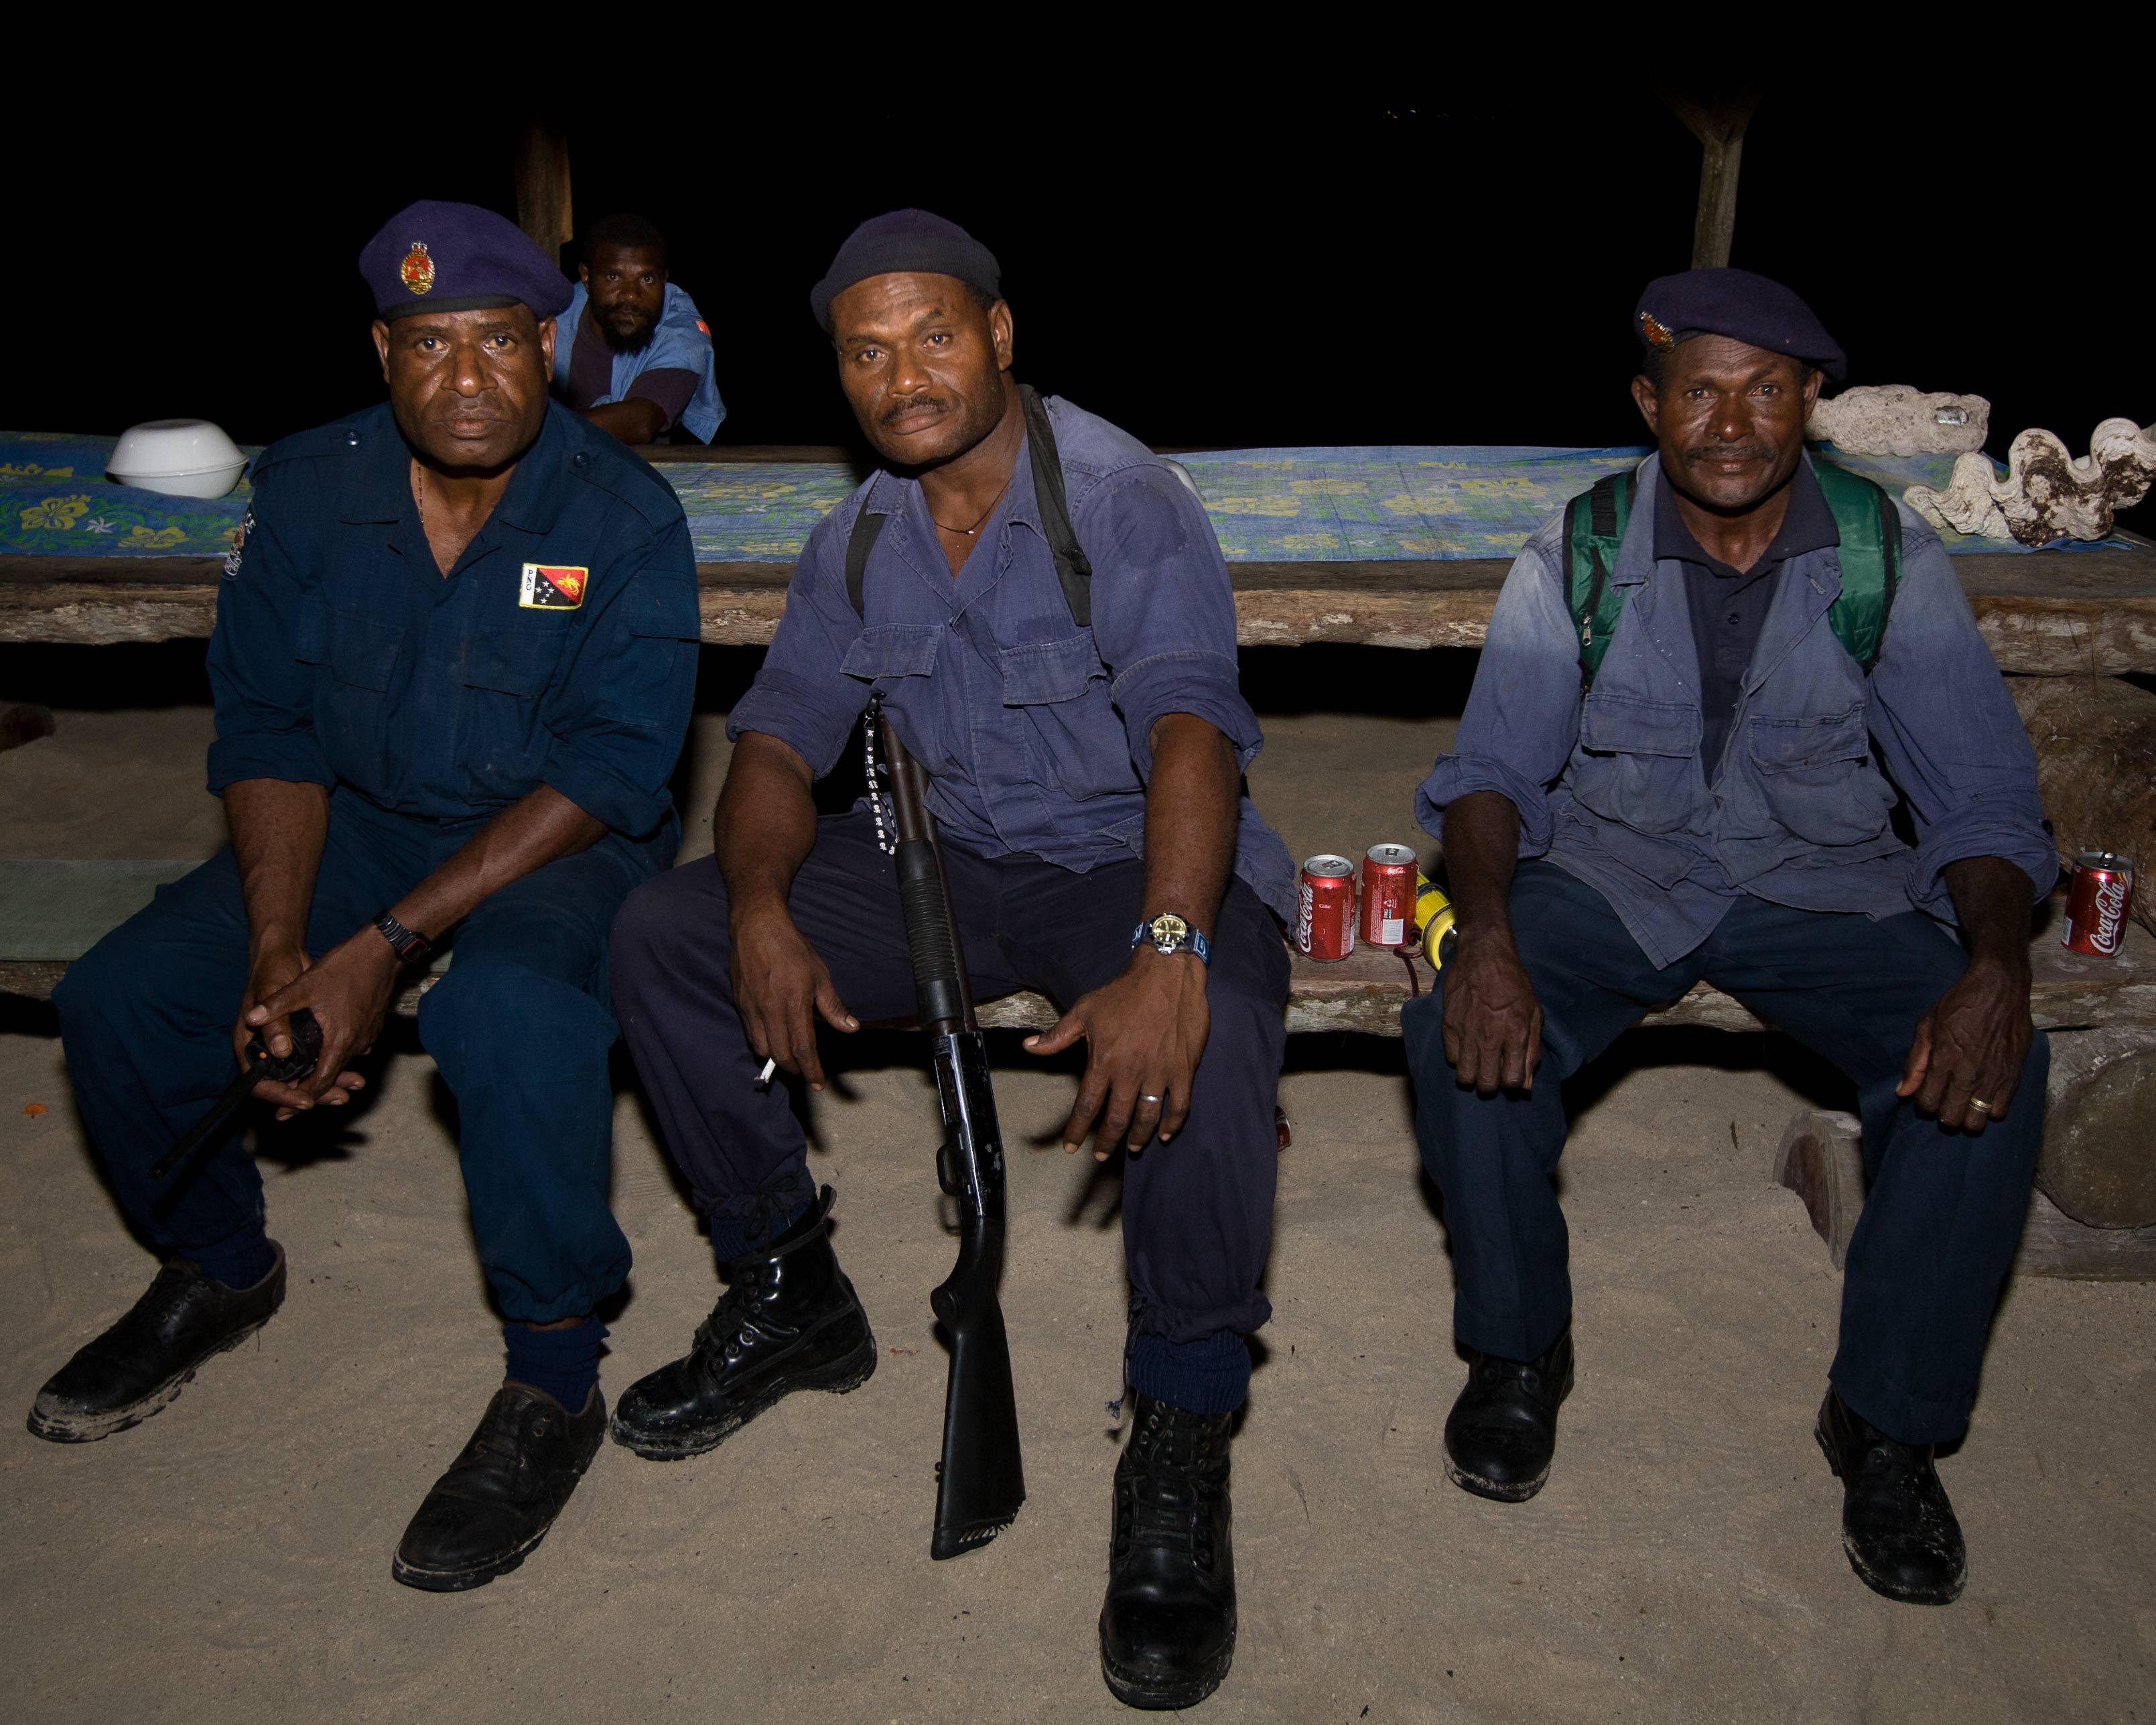 Kavieng_Surf_Camp_Guards.jpg